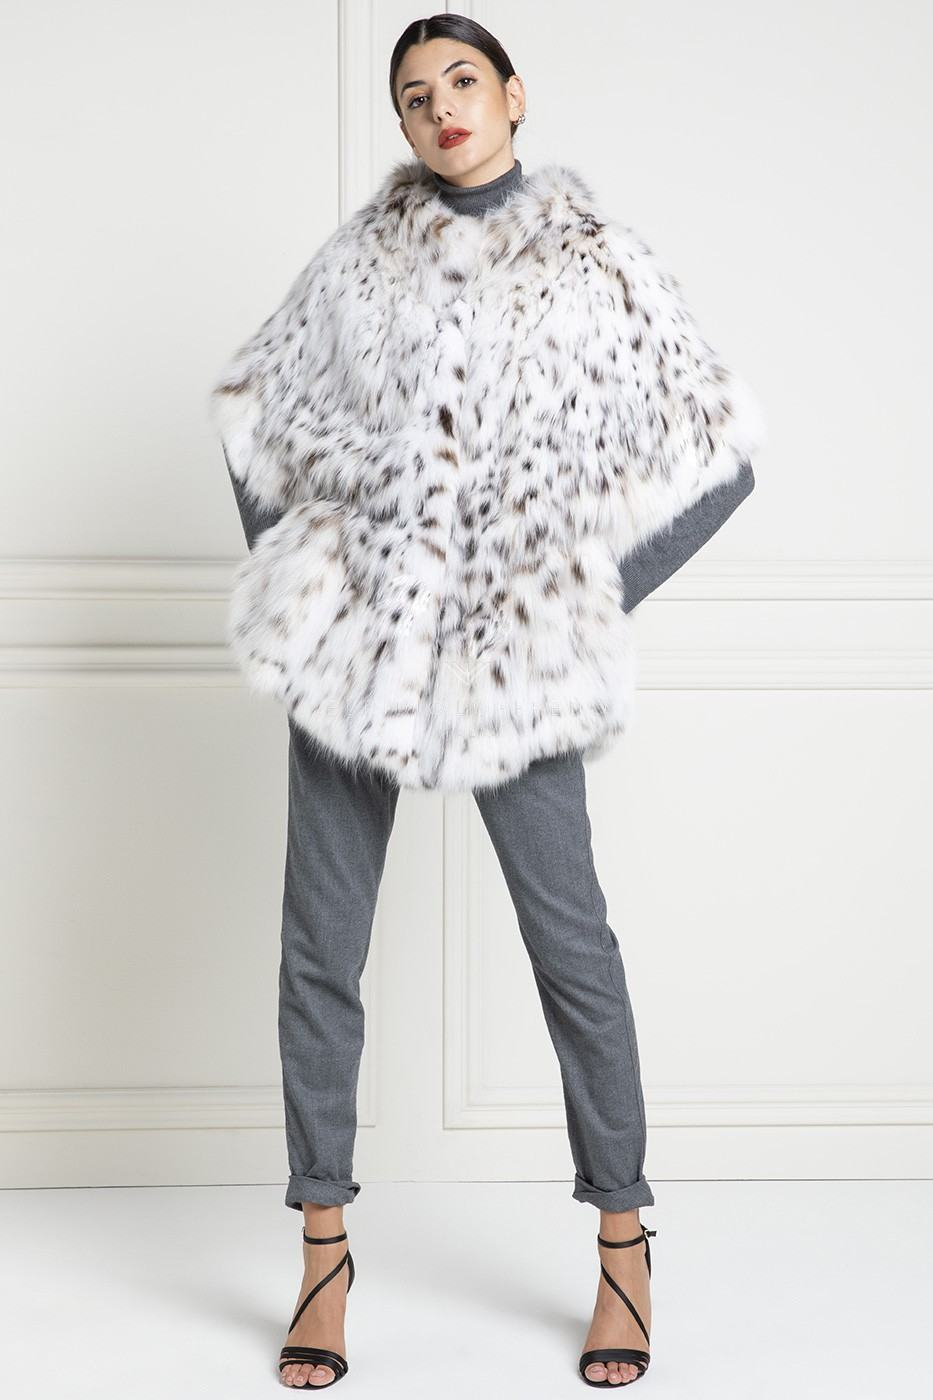 Full White Lynx Fur Jacket - Lynx Belly - Length 75 cm